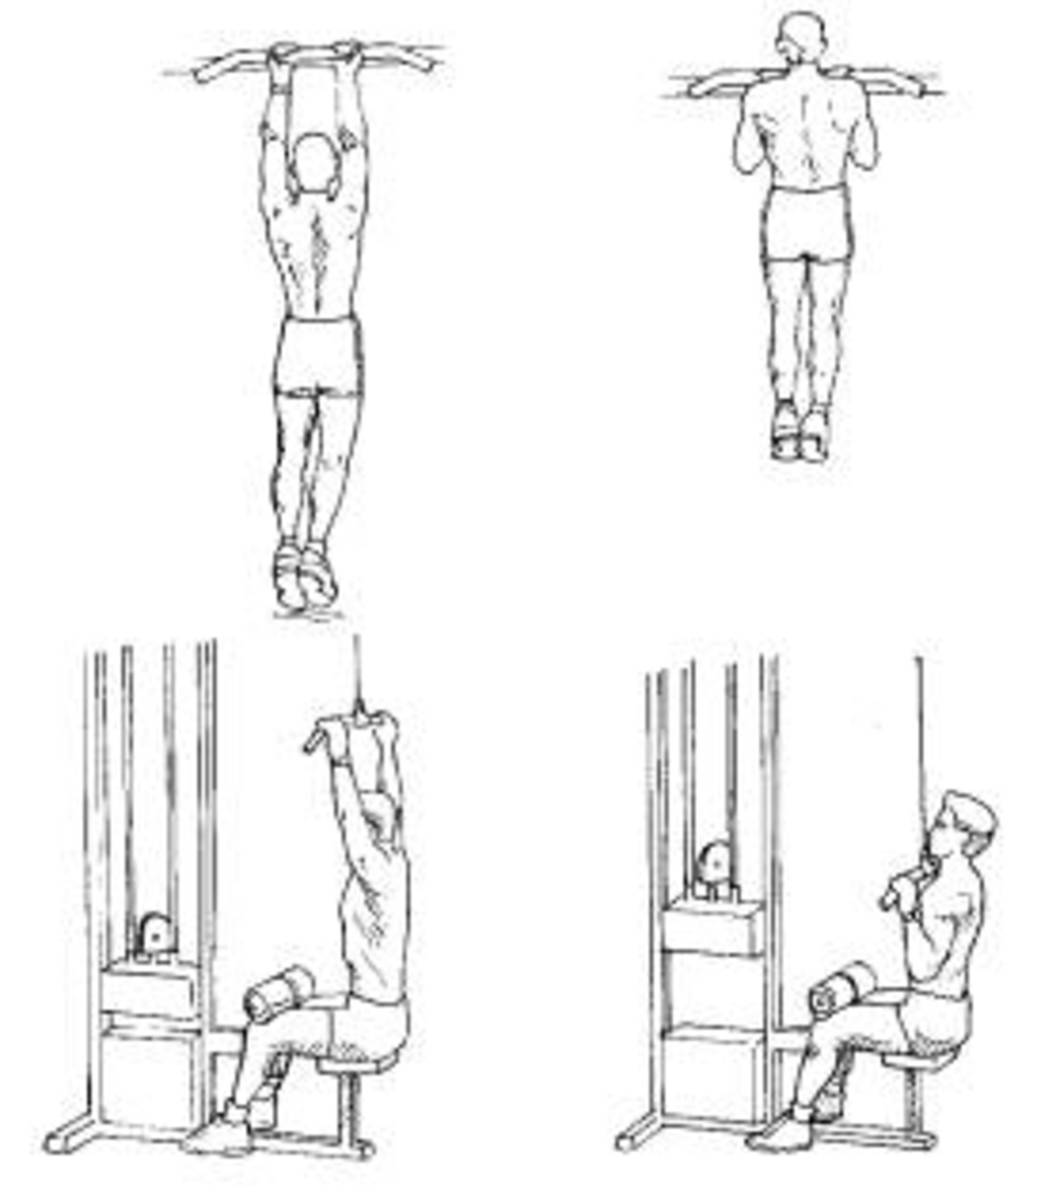 Proper lat-pull and pull-up techniques.